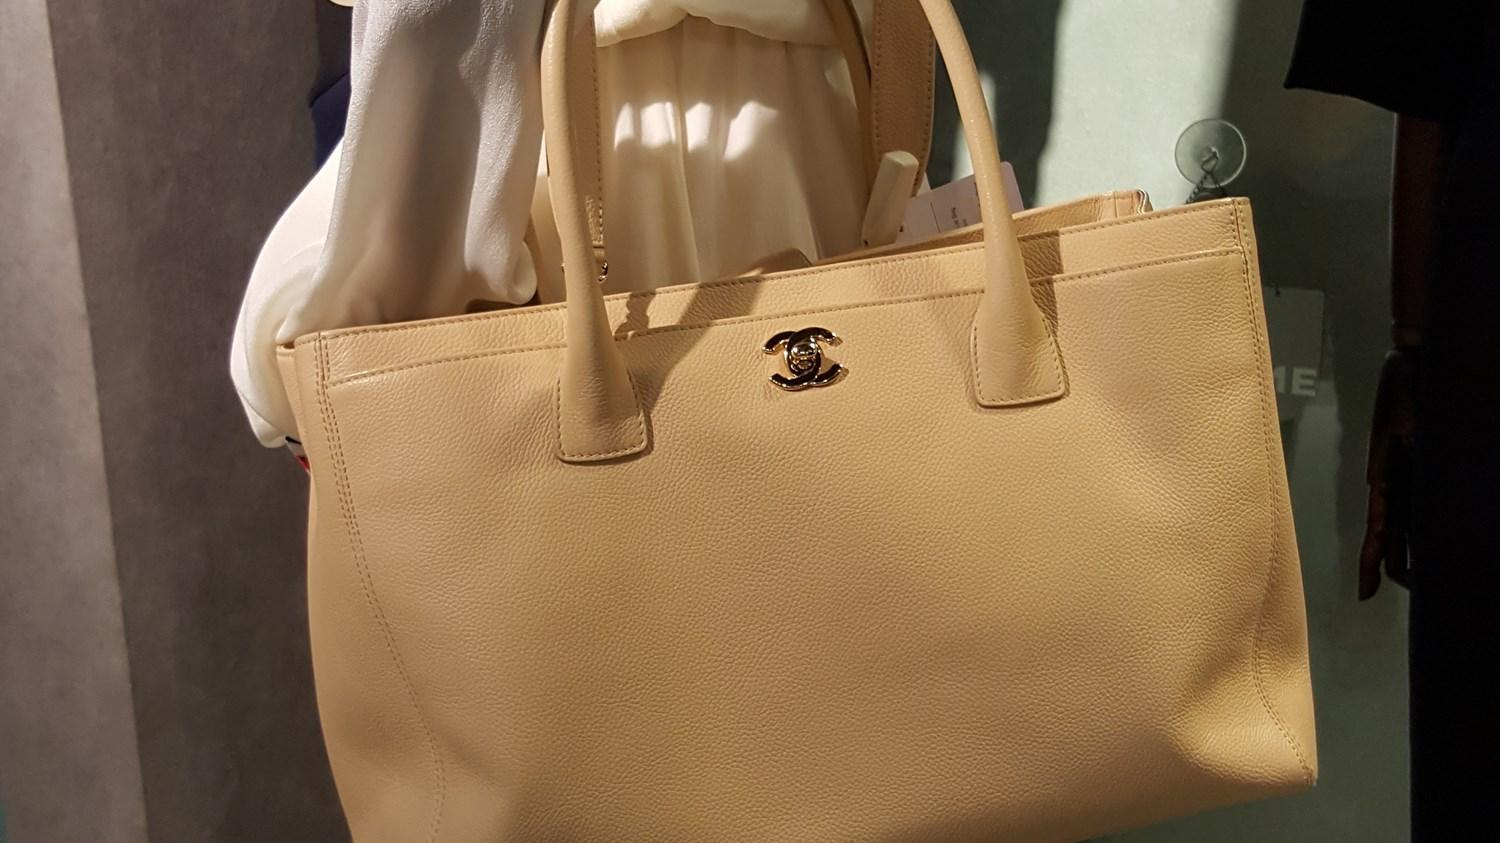 61b14a708239a4 Chanel Executive Cerf Tote Bag - A15206 in Natural - Lyst